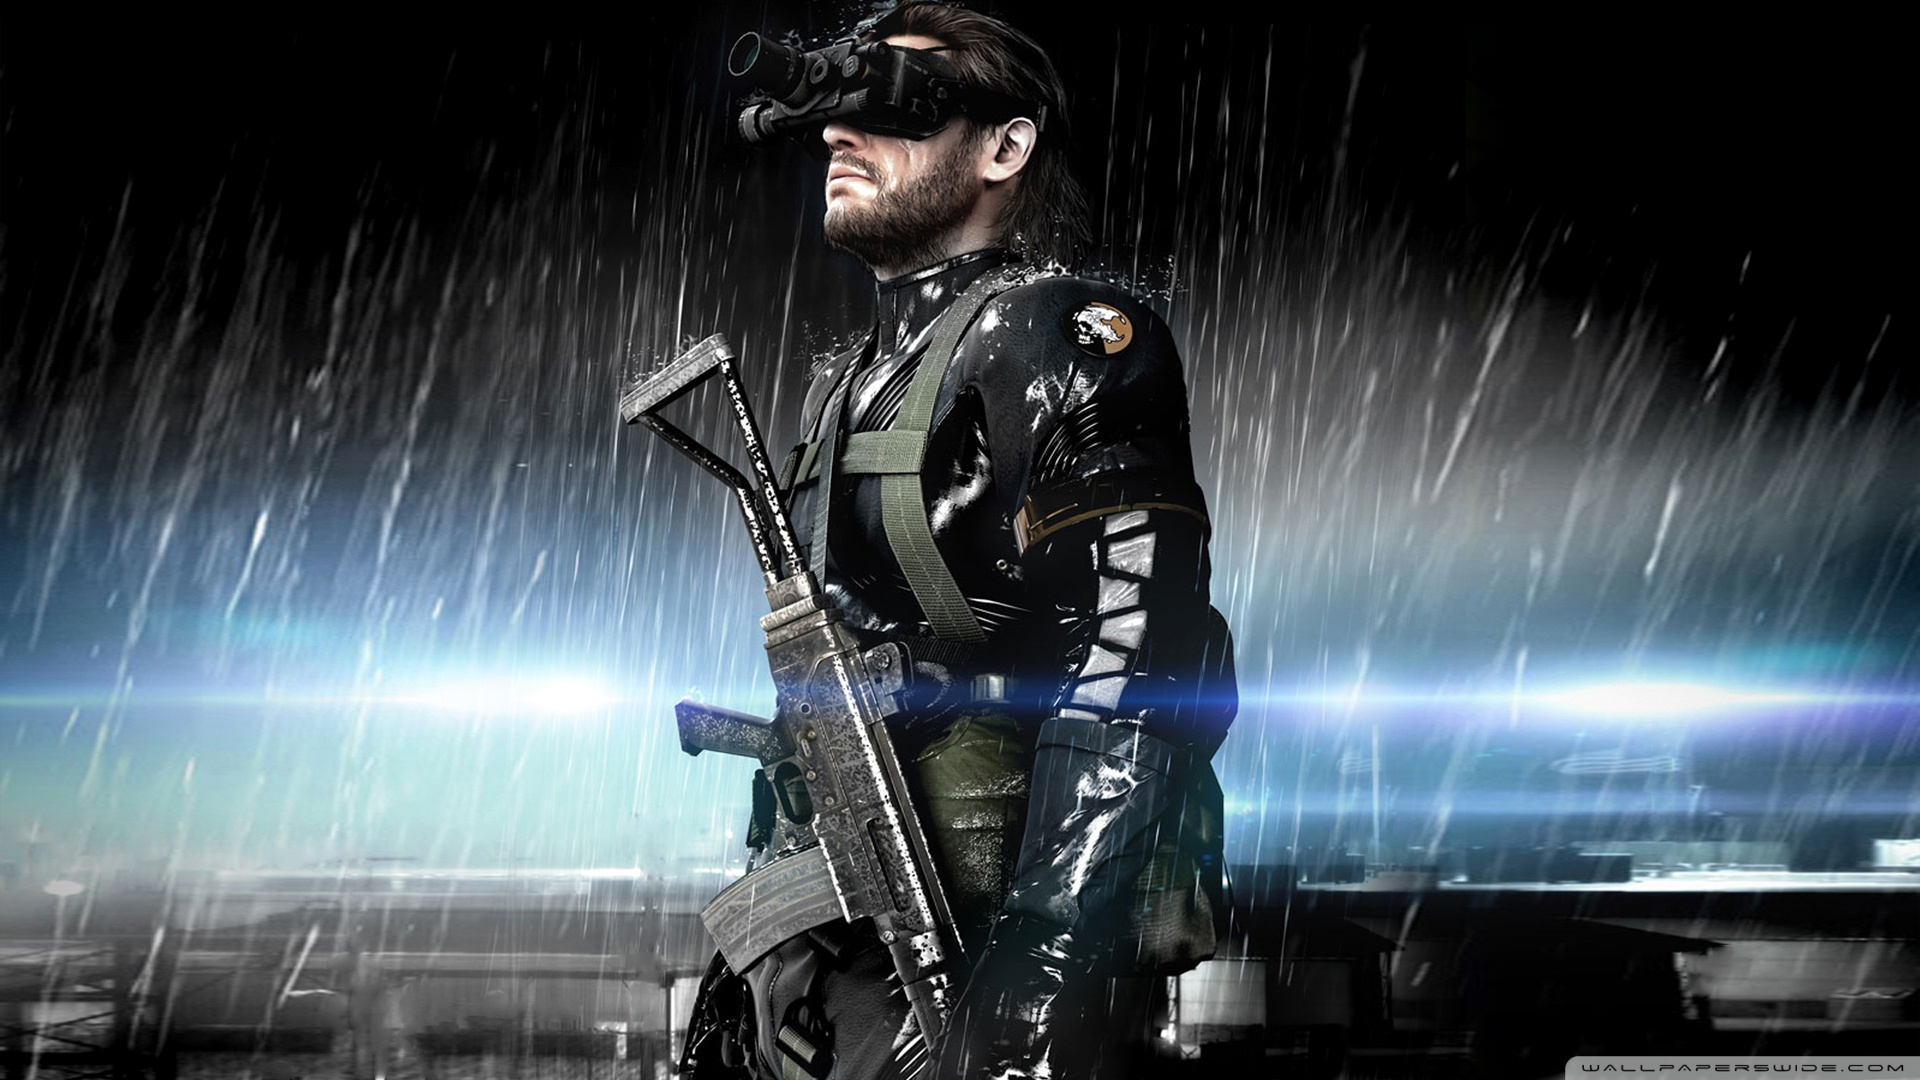 Free Download Metal Gear Solid 5 Wallpaper 1176387 1920x1080 For